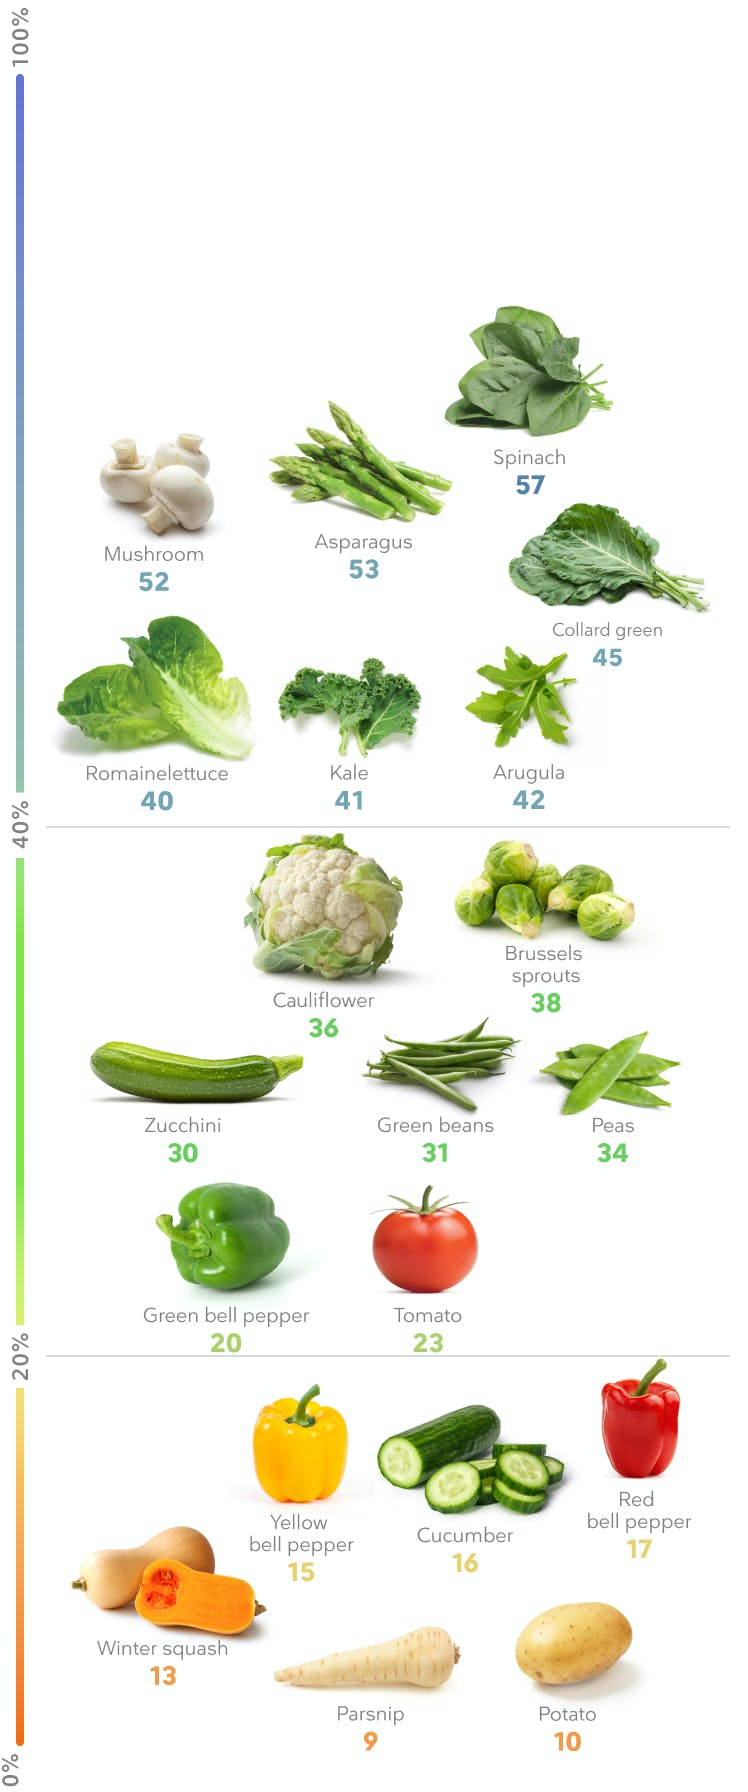 Best High-protein Vegetables Weight Loss